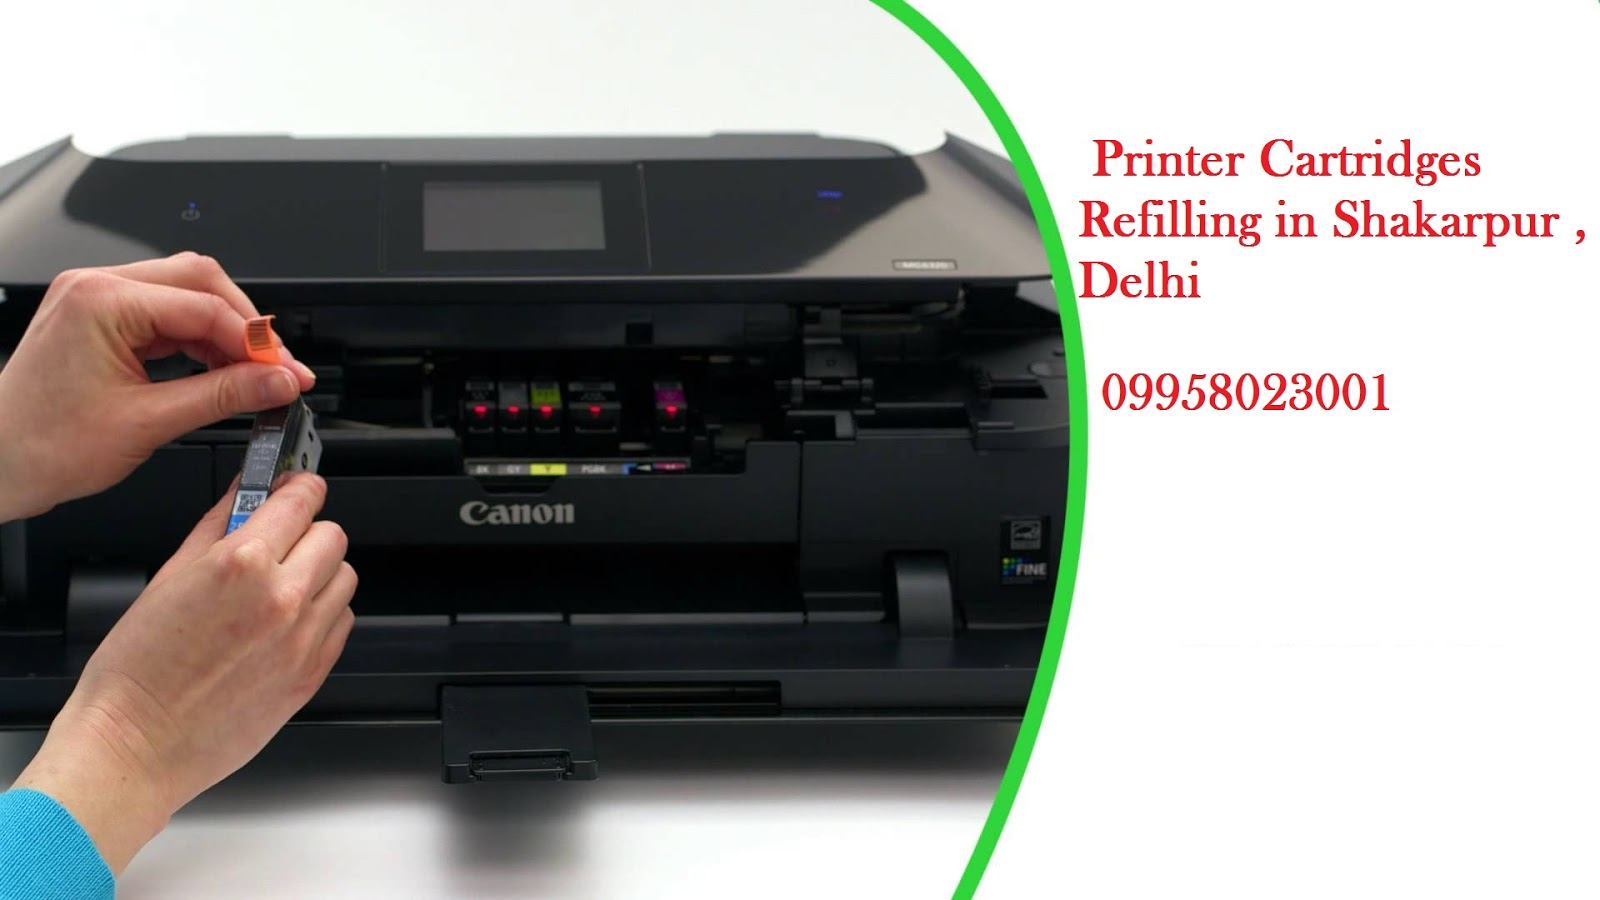 Color printout price in delhi - Buying A Perky Cartridge For Your Printer All Era You Run Out Of Ink Can Burn A Hole In Your Pocket A Much Augmented Option Is To Refill Your Cartridges At